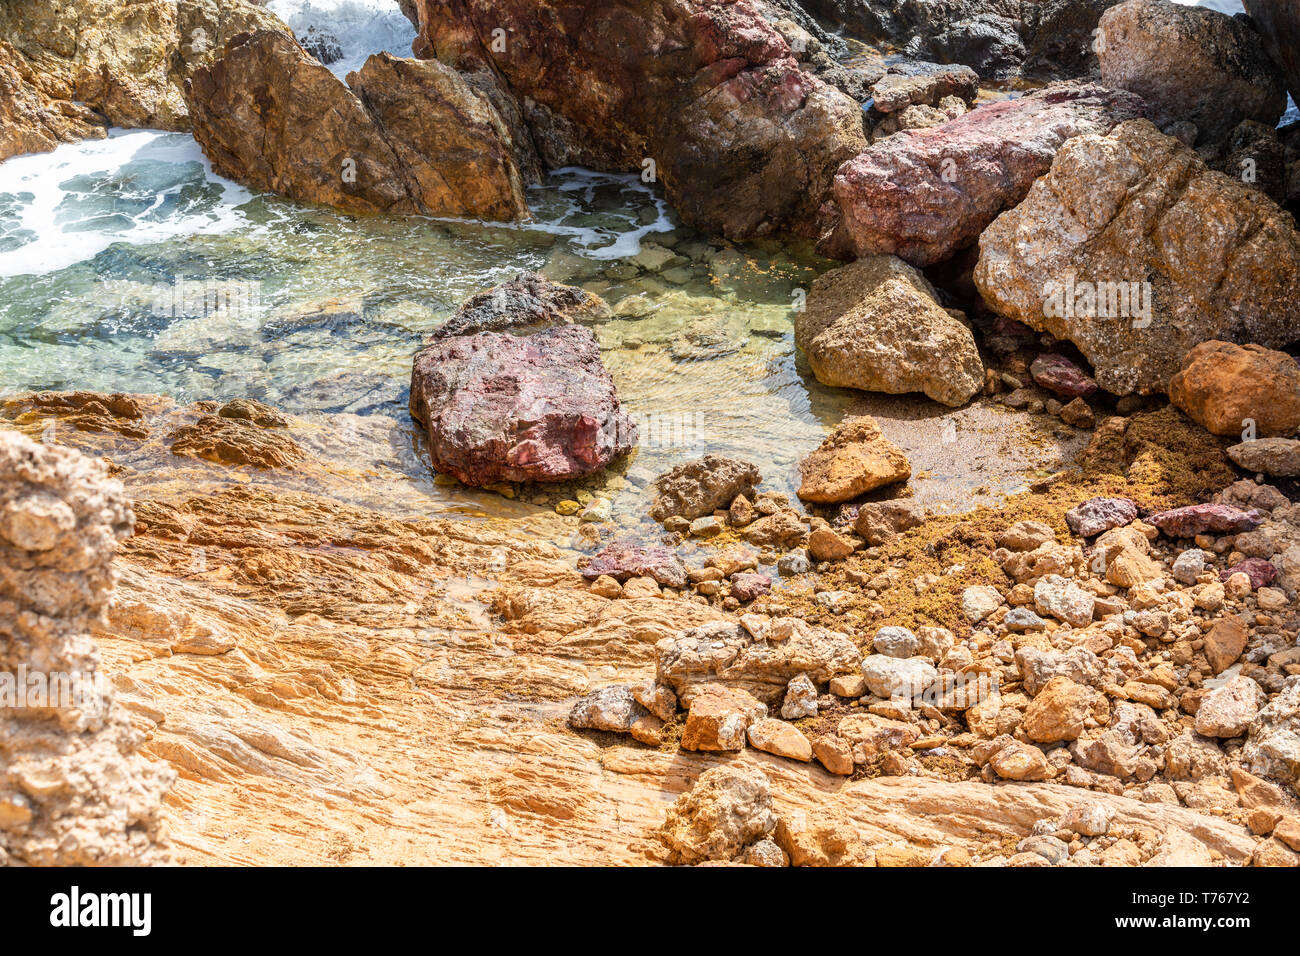 Tidal pool at Grand Fond in St Barts - Stock Image